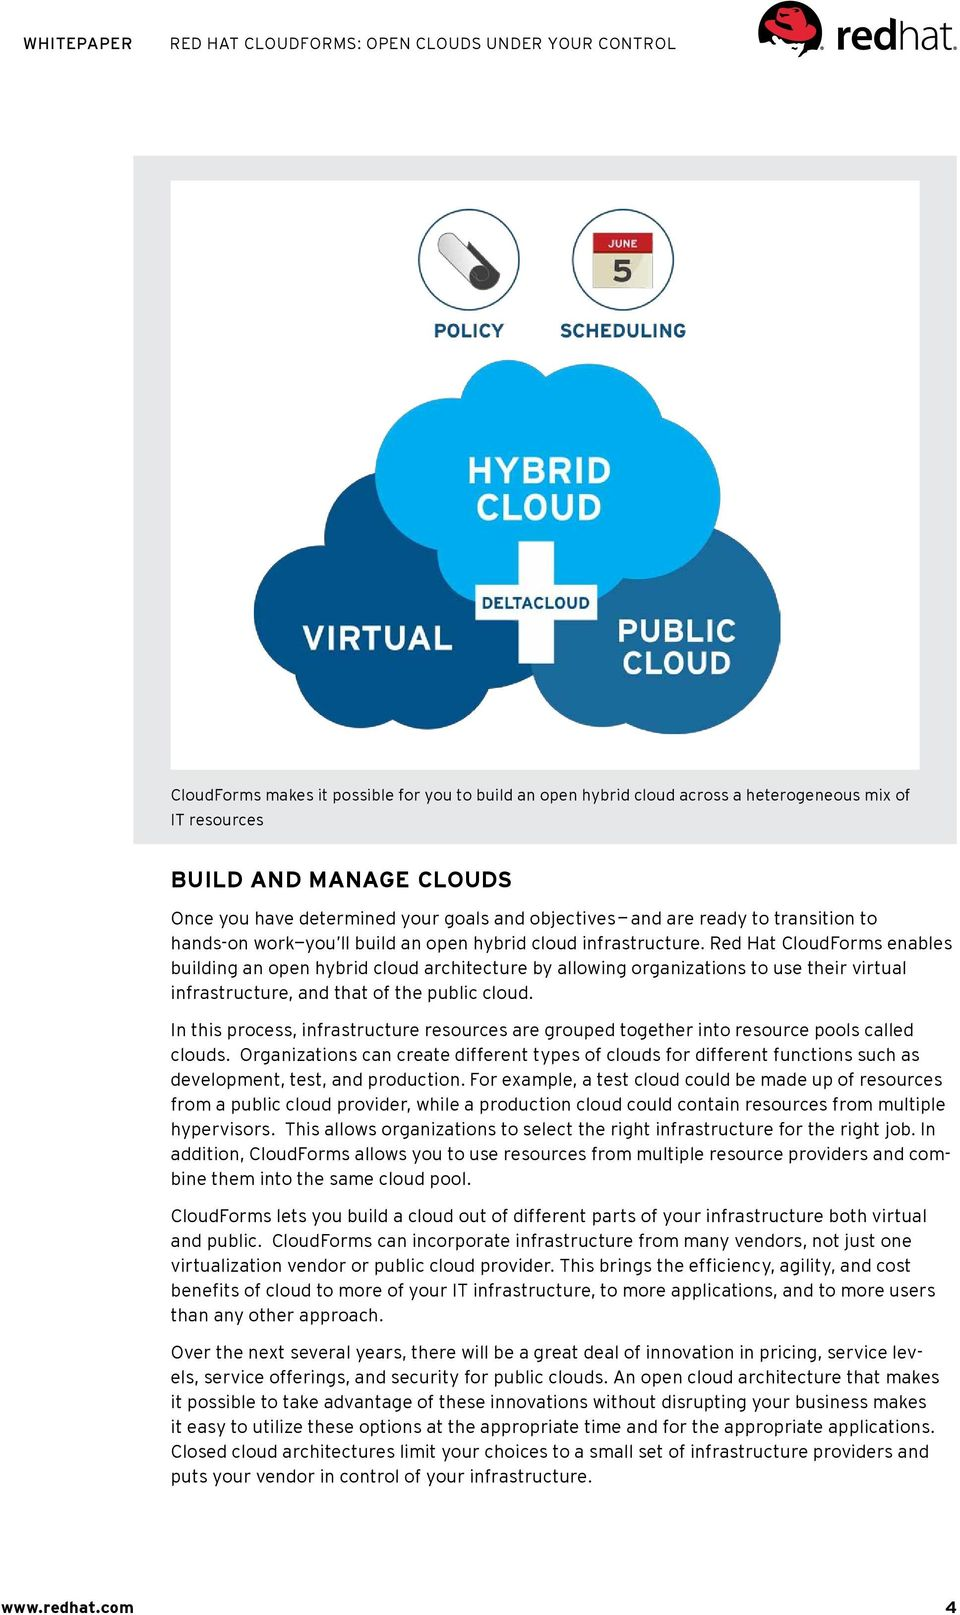 Red Hat CloudForms enables building an open hybrid cloud architecture by allowing organizations to use their virtual infrastructure, and that of the public cloud.